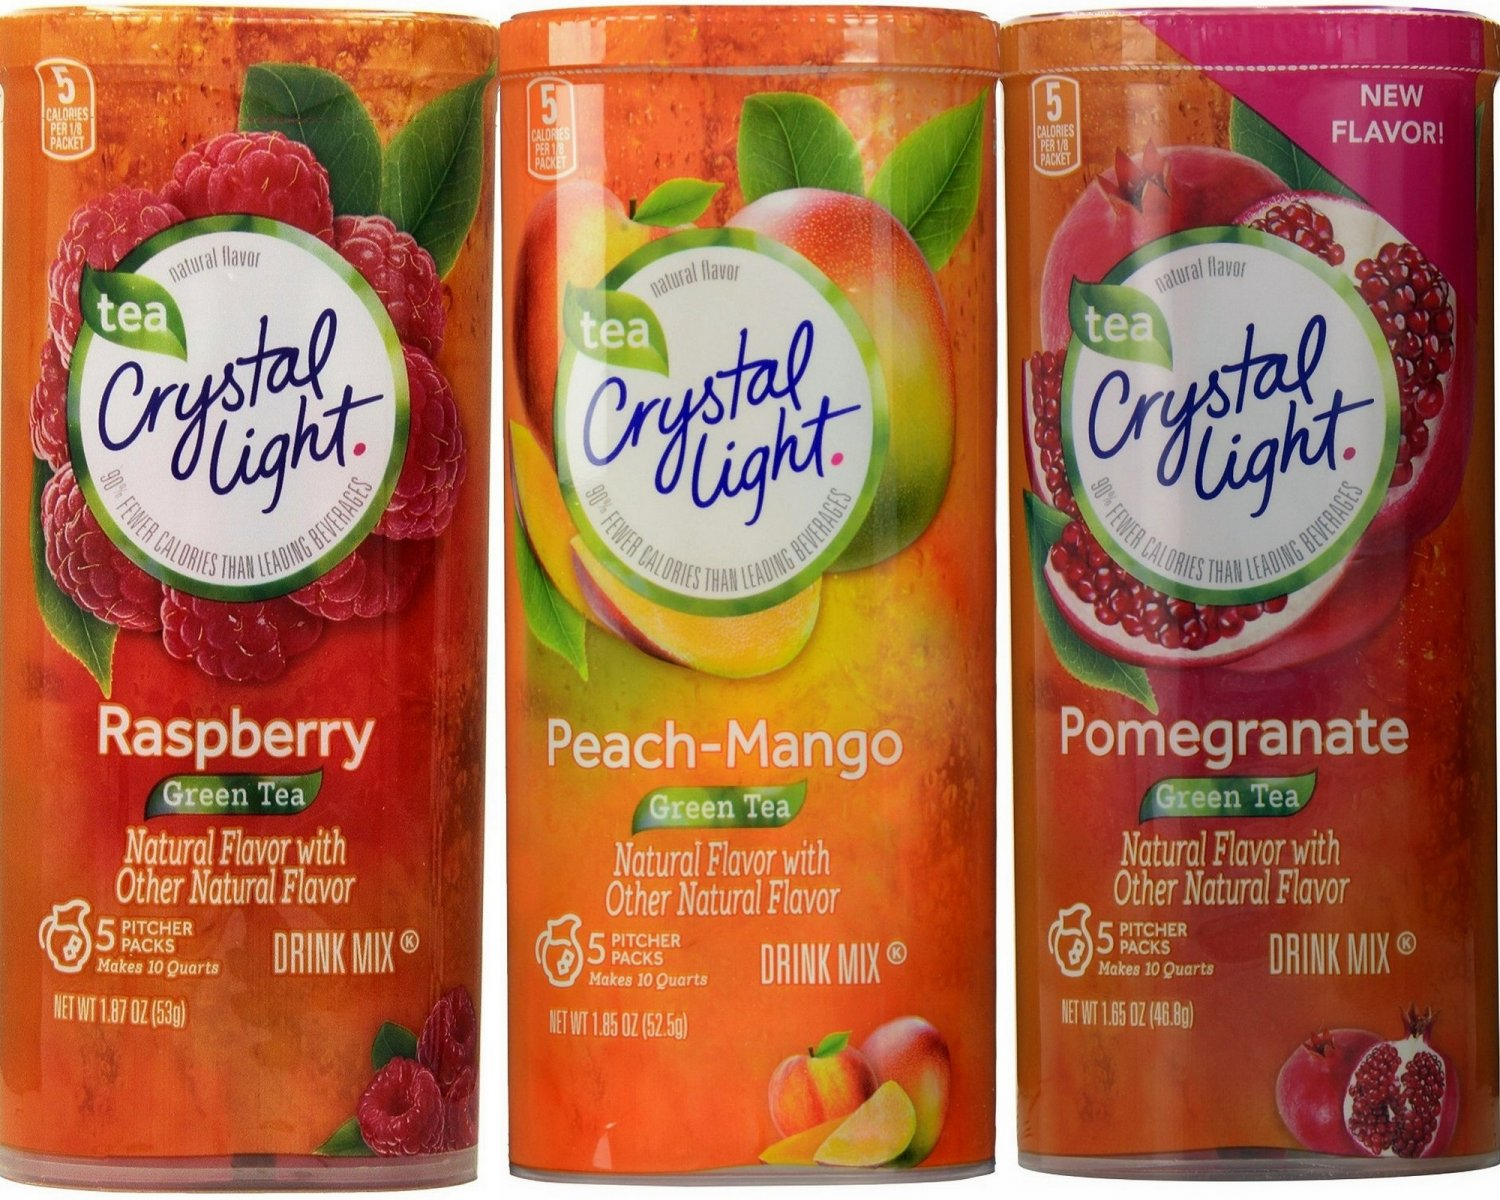 Crystal Light Green Tea Drink Mix Variety Pack 3 Flavors, 2 Canisters Each Flavor, 6 Canisters Total